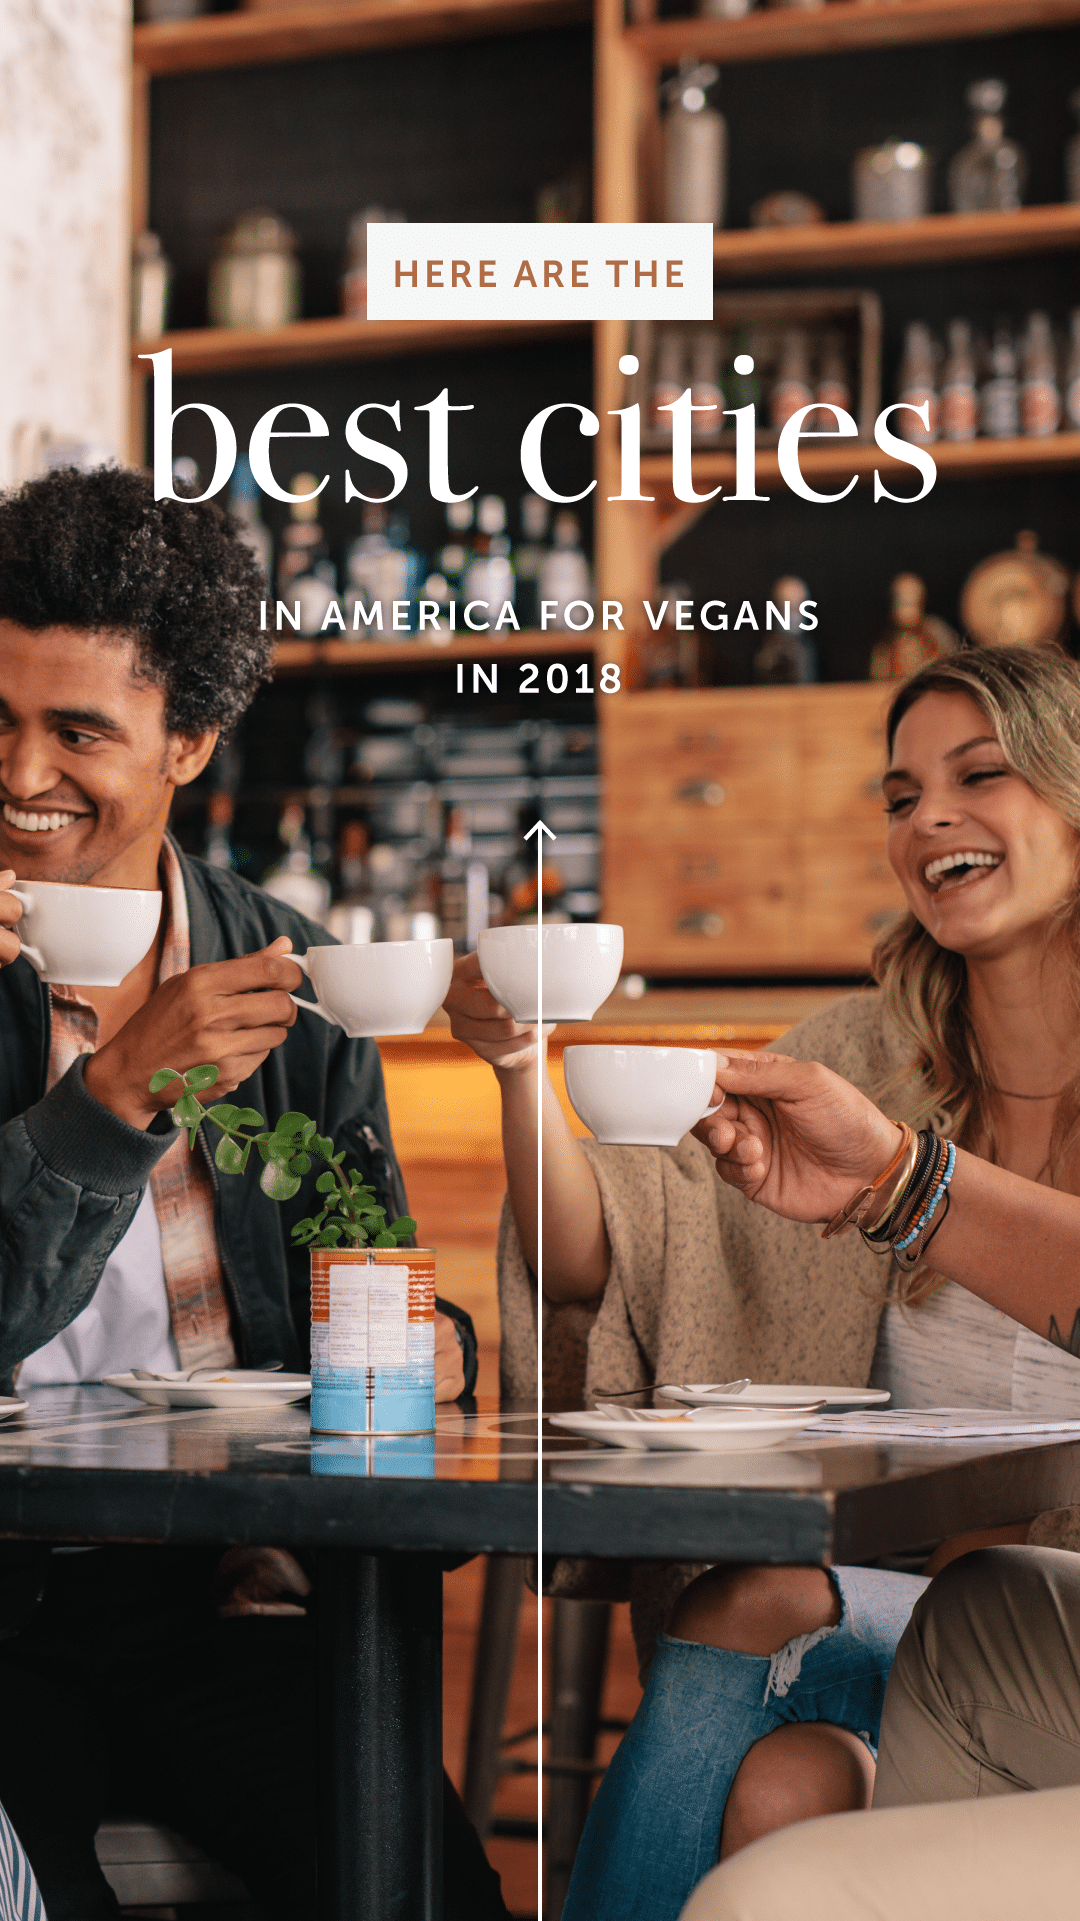 Here Are the Best Cities in America for Vegans in 2018